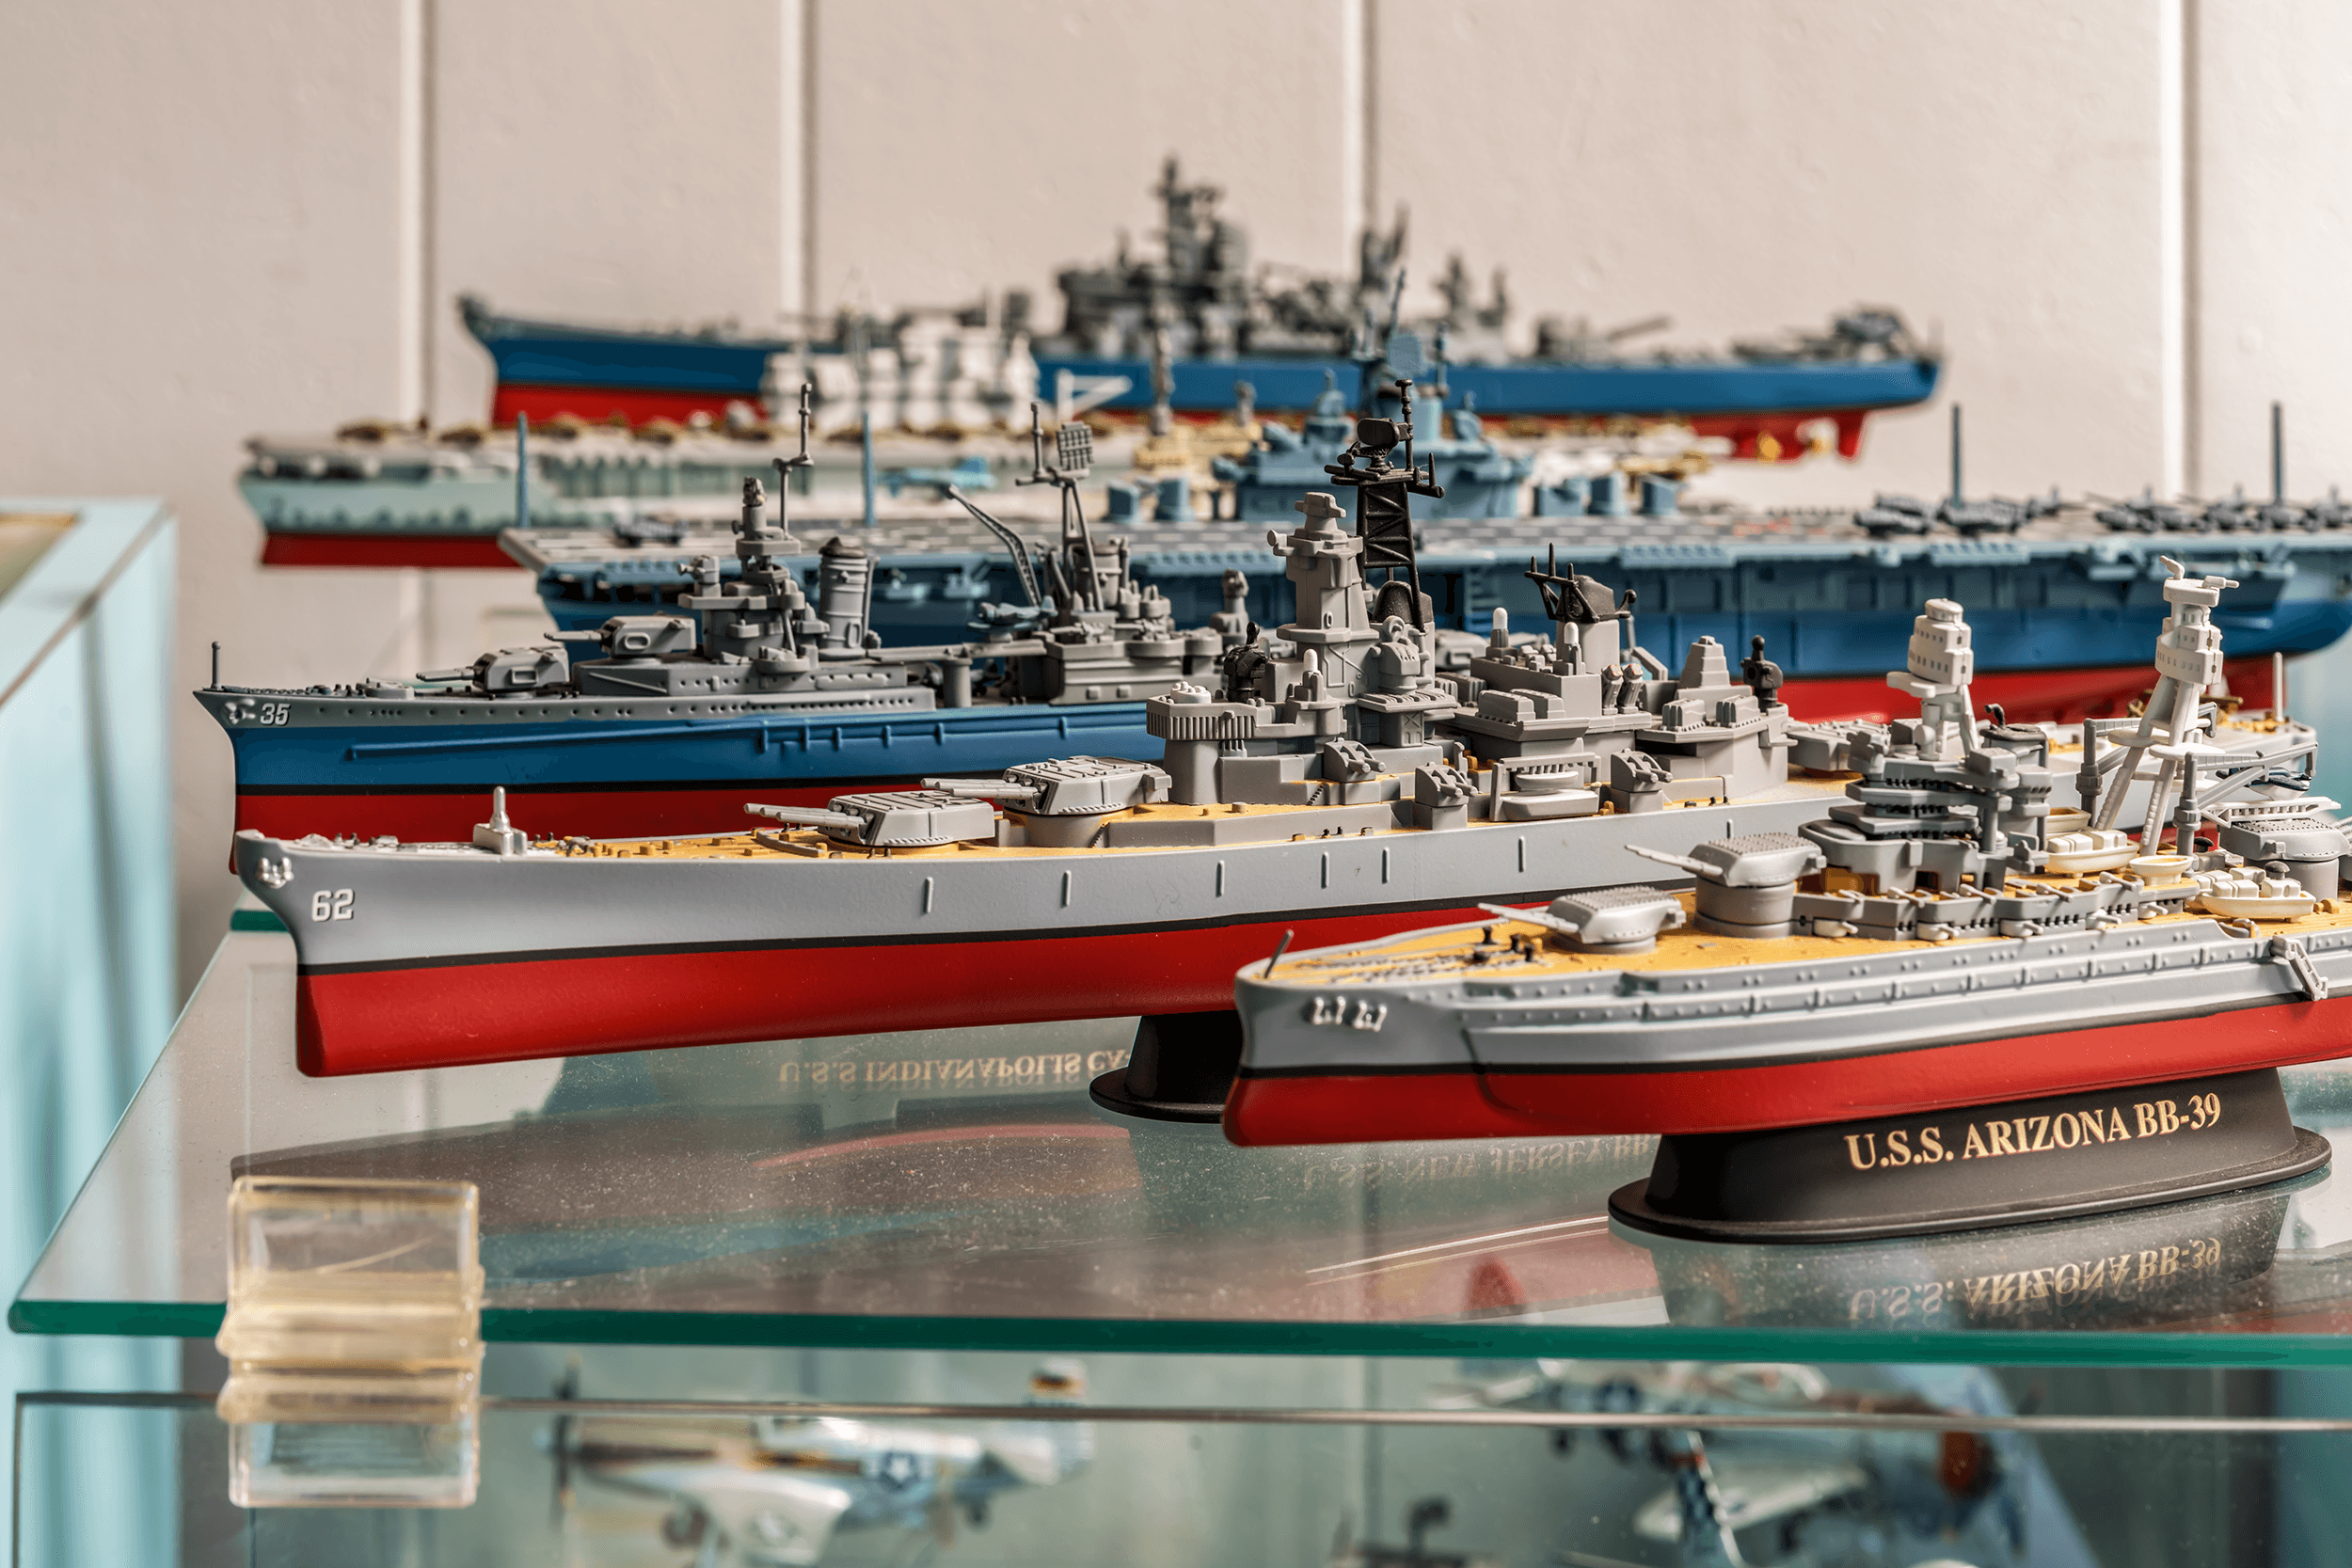 Pictured here is a model of the  U.S.S. Arizona BB-39 , which was commissioned in 1916 and sunk during the Japanese attack on Pearl Harbor in 1941. Behind it is the  U.S.S. New Jersey BB-62 , which earned 19 battle stars and is the most decorated battleship in the U.S. Navy's history. Decommissioned for the first time in 1957, she was reactivated for one year in 1968 to support U.S. troops in Vietnam. As part of the Navy modernization program, the  U.S.S. New Jersey  was modernized to carry missiles and put into service once more in 1982. She was decommissioned for the last time in 1991 and today serves as a museum ship in Camden NJ.